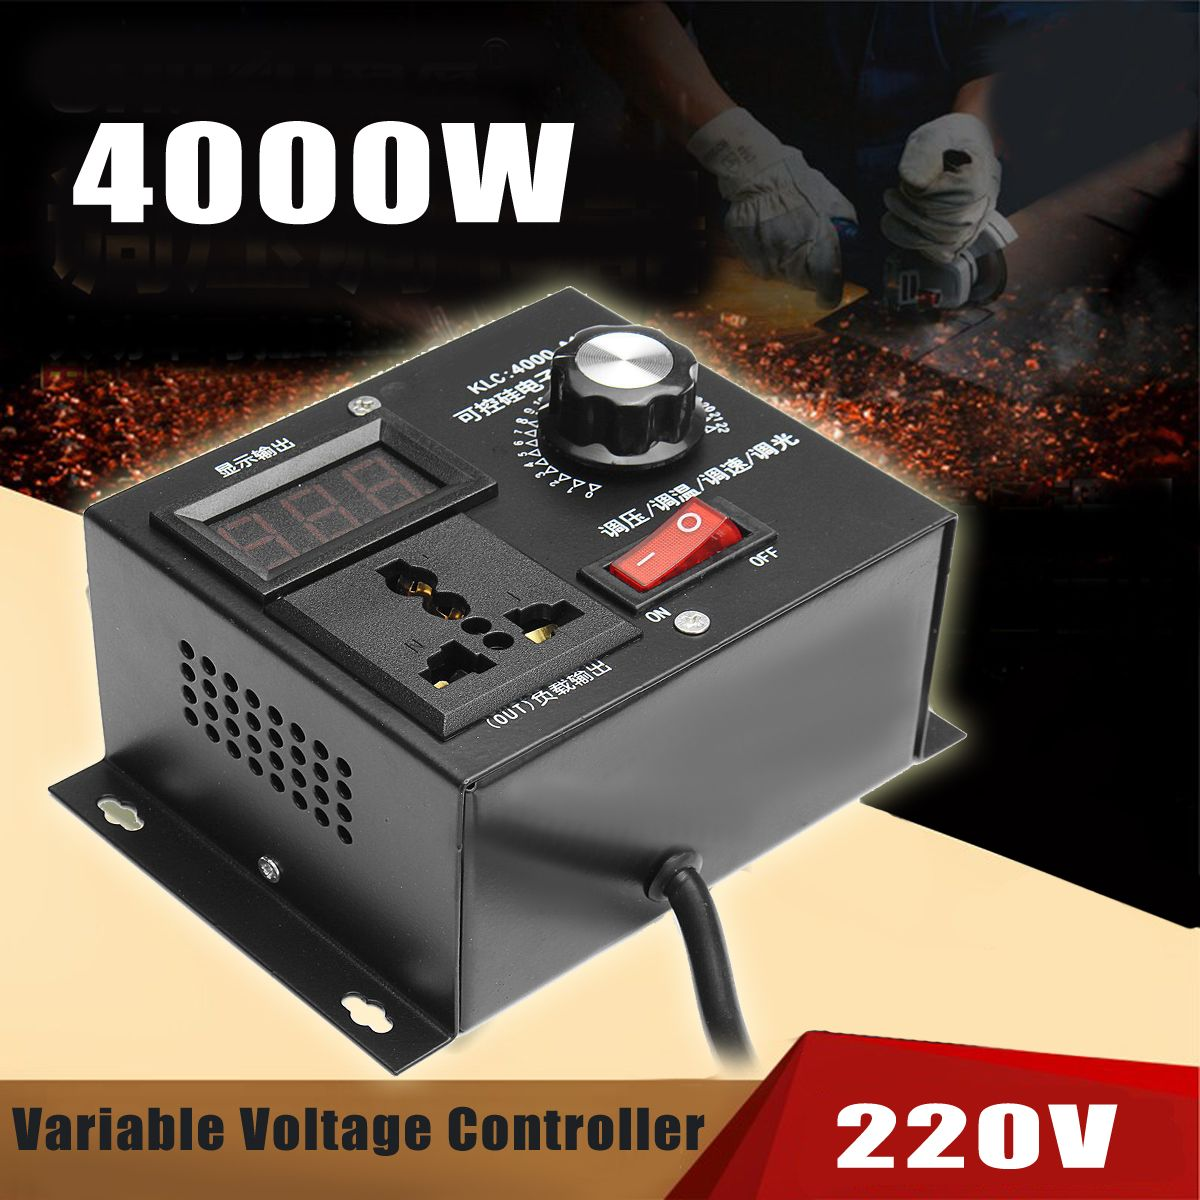 220V 4000W Variable Voltage Controller For Fan Speed Motor Control Dimmer Speed Temperature Voltage Adjustment